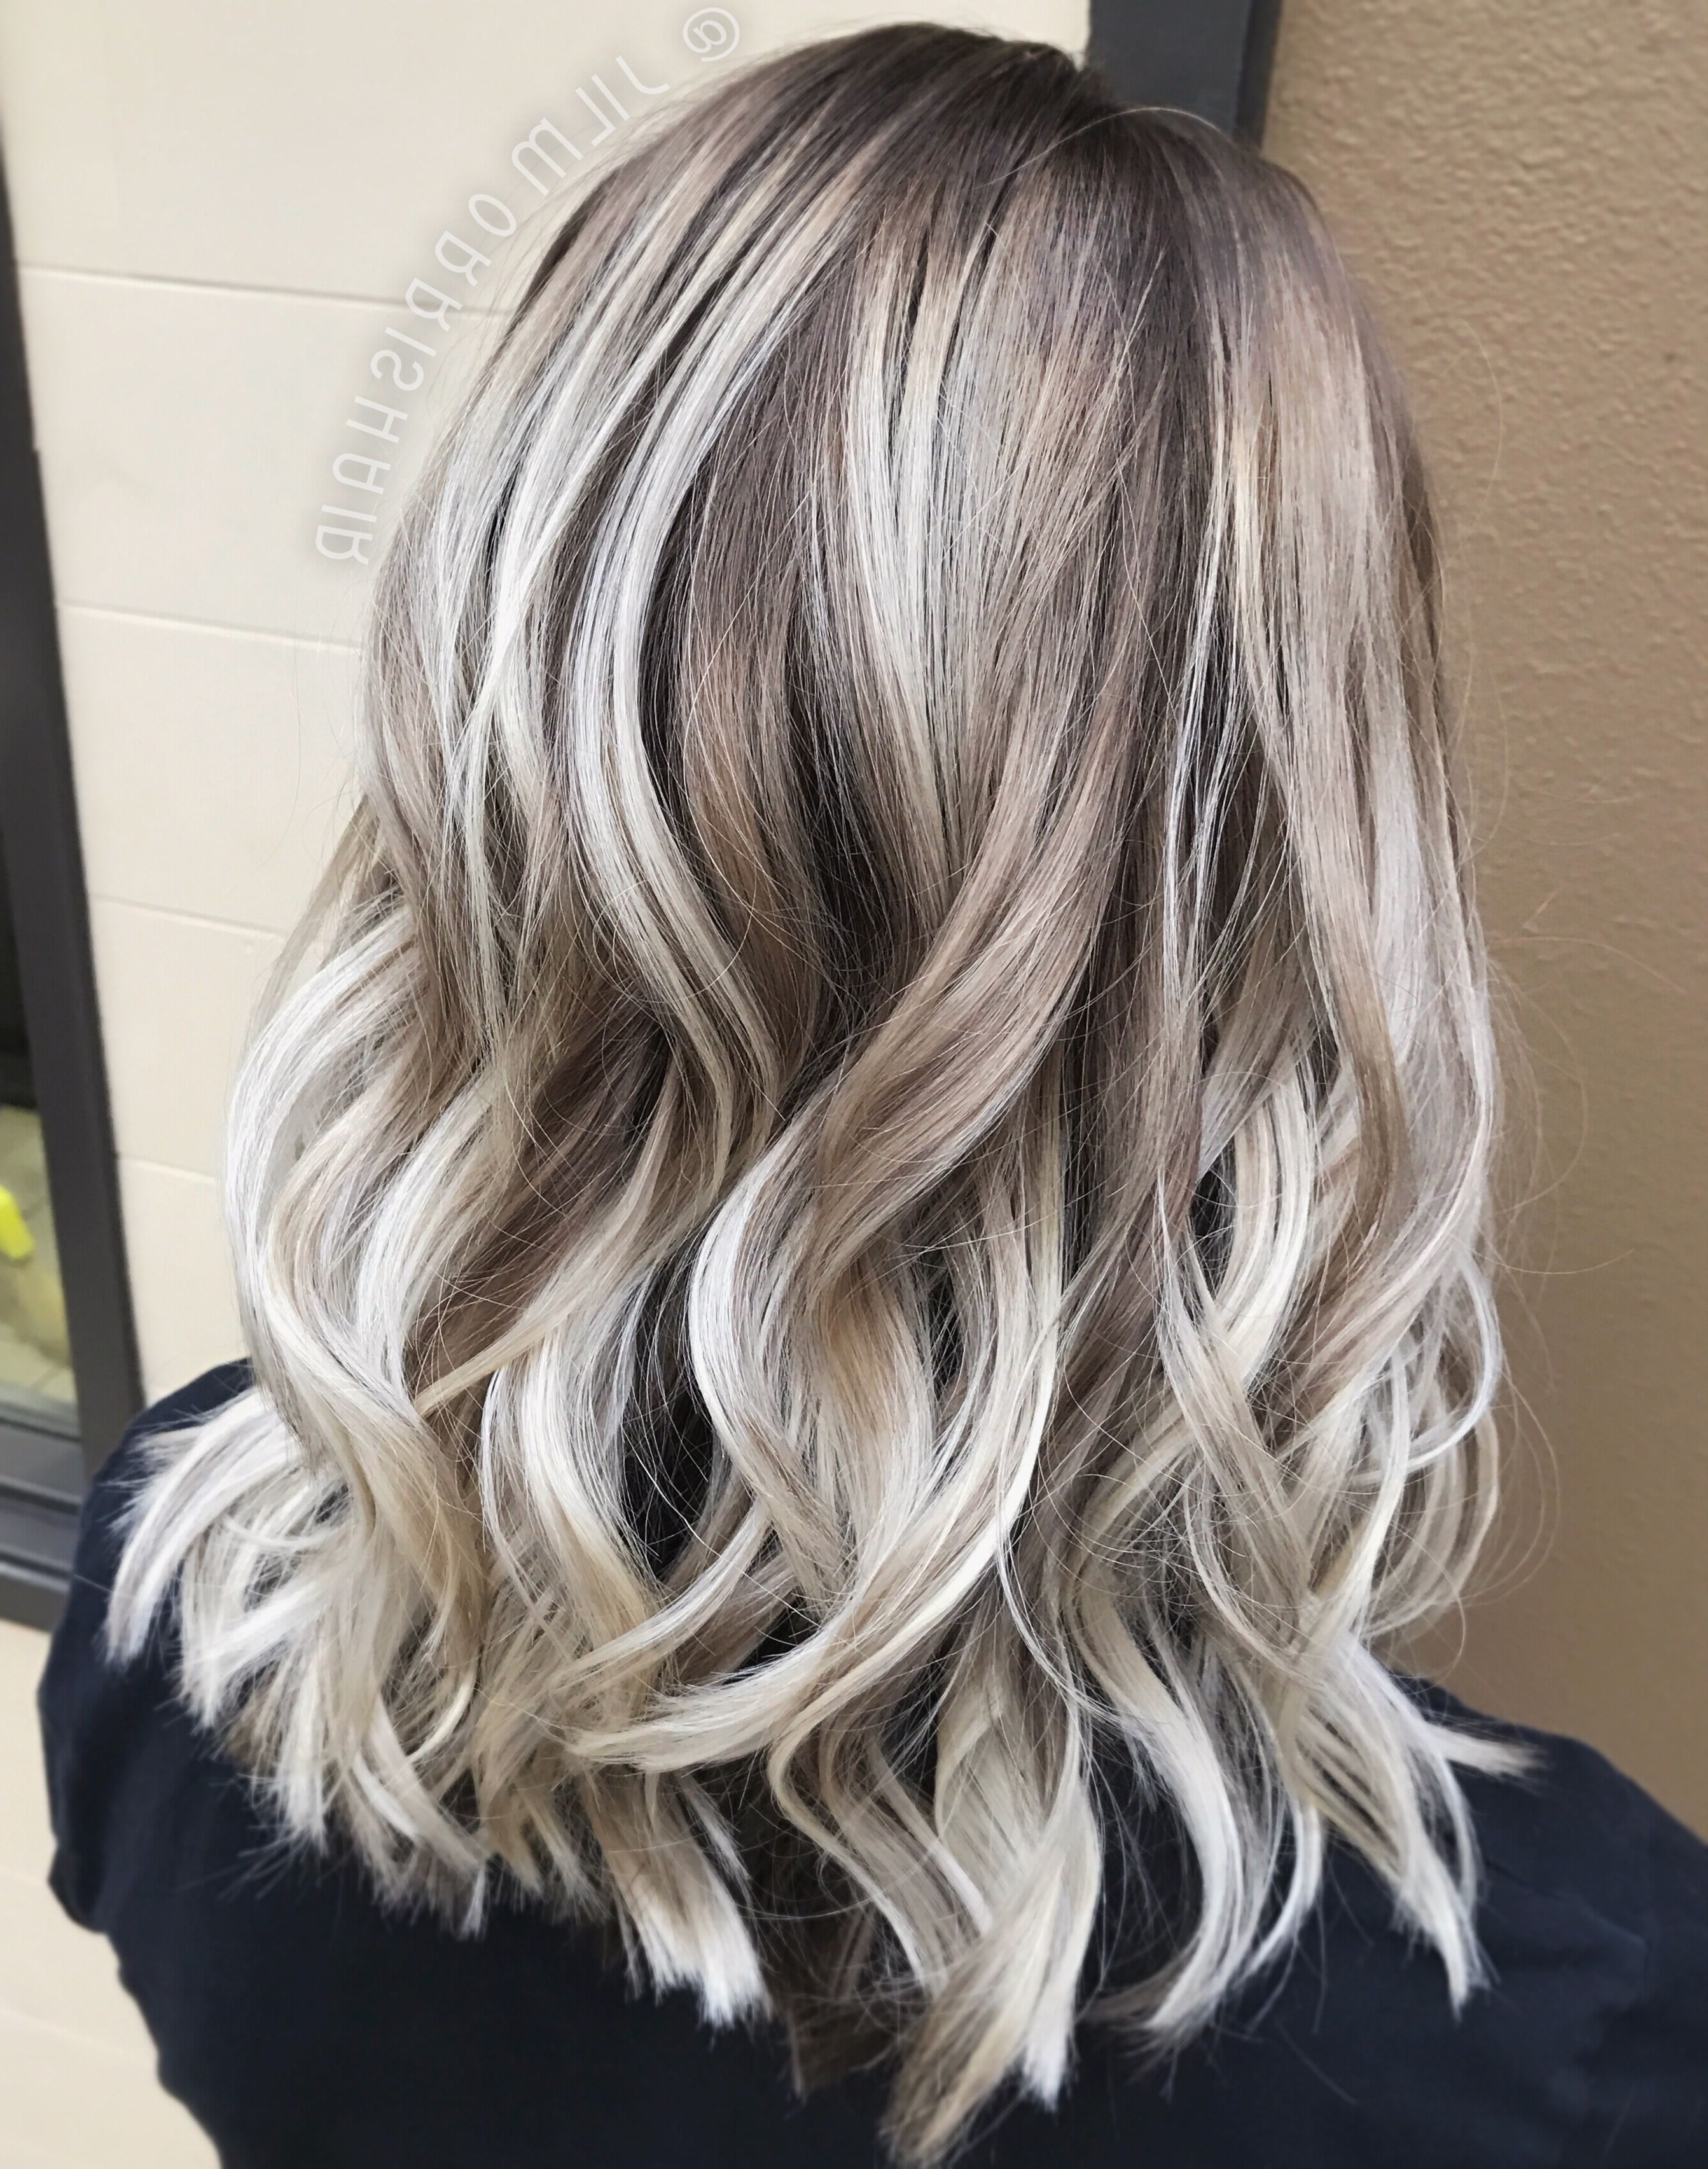 White Ash Blonde Balayage, Shadow Root, Curls In A Textured Lob Pertaining To 2017 Long Blond Ponytail Hairstyles With Bump And Sparkling Clip (View 14 of 20)